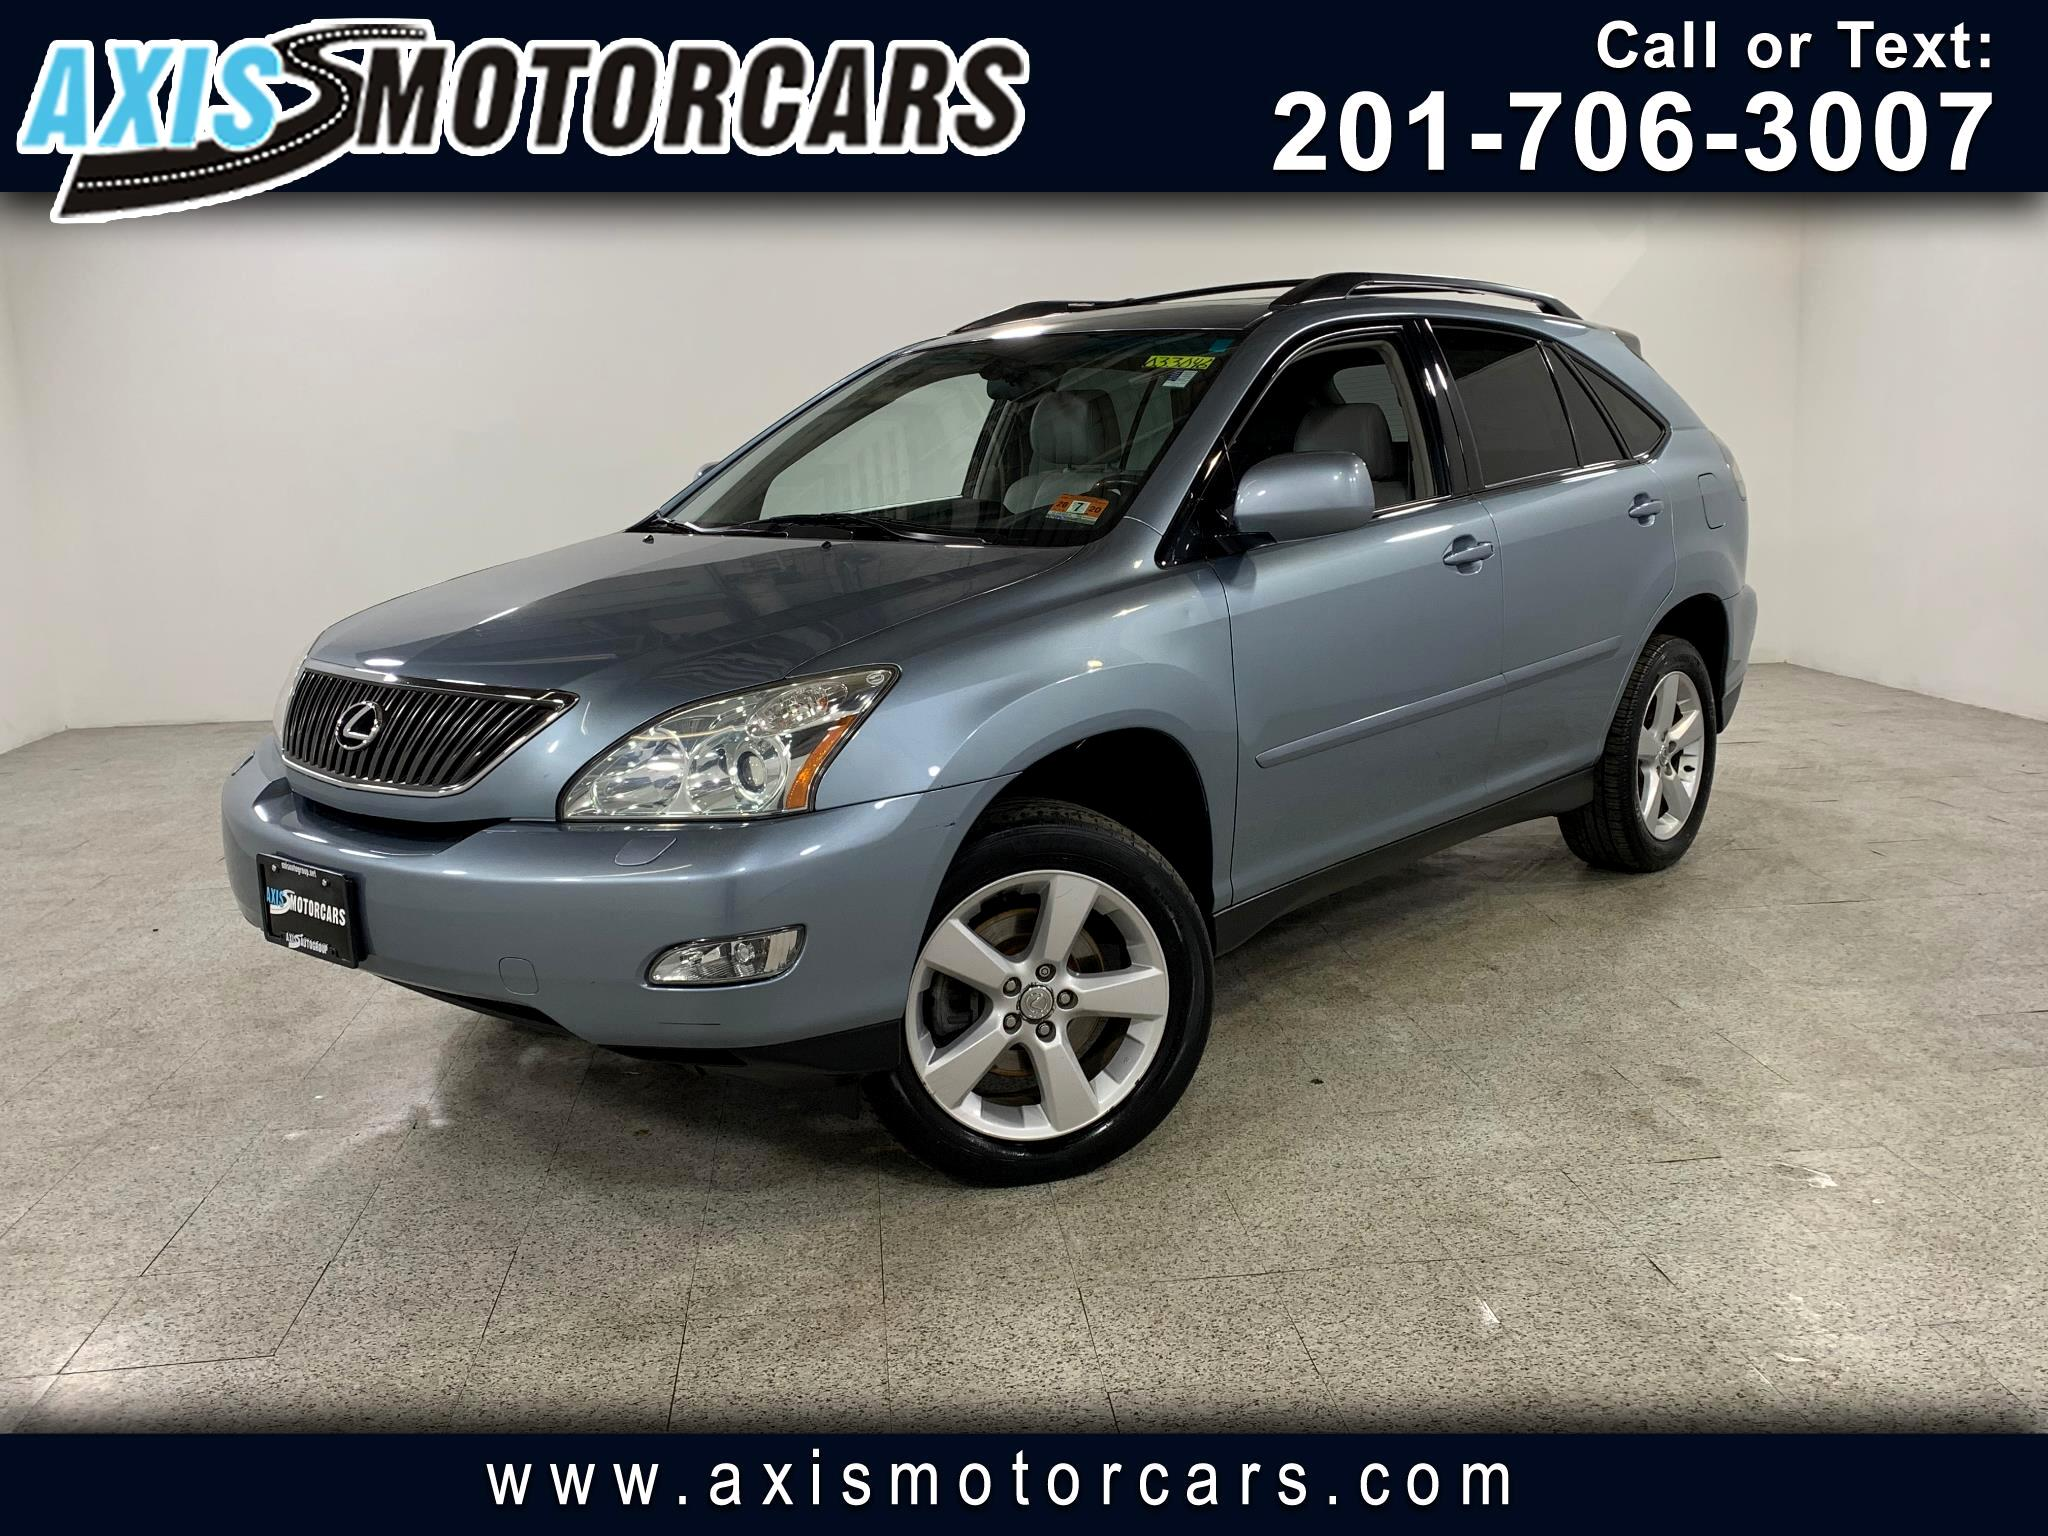 2004 Lexus RX 330 w/Sunroof Leather